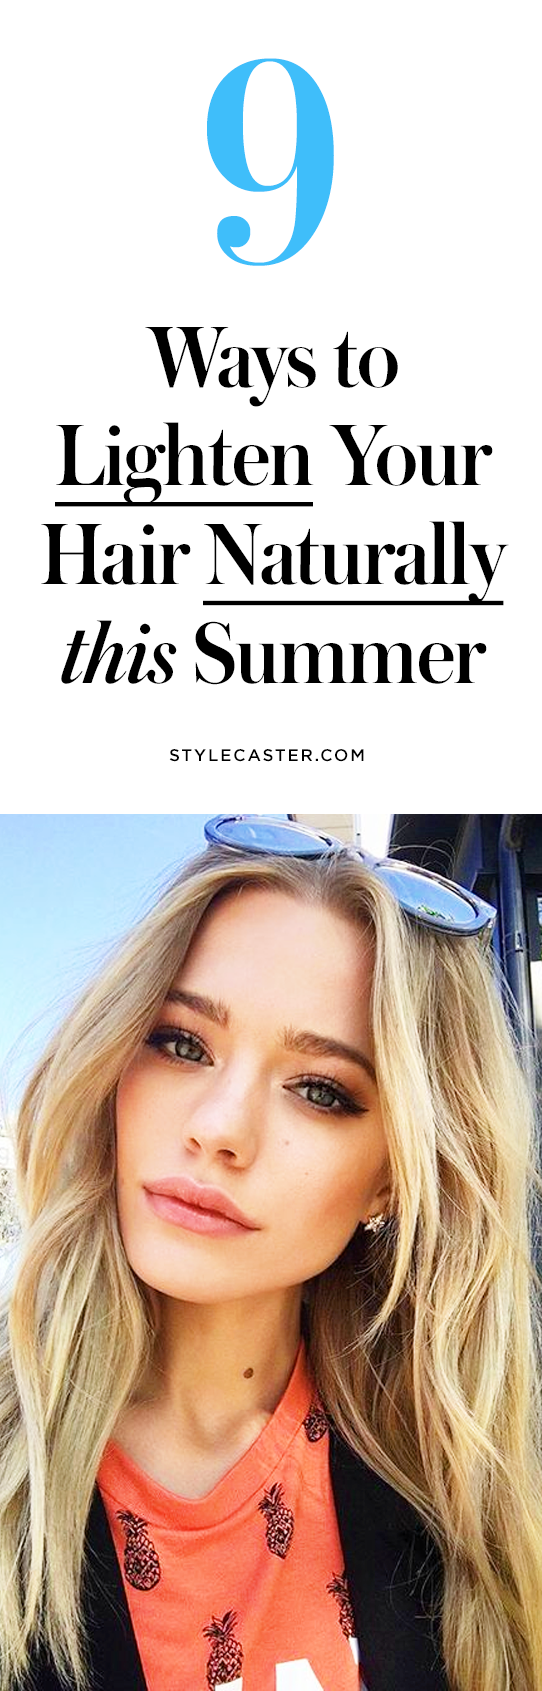 9 Ways to Lighten Your Hair Naturally This Summer | DIY | @stylecaster